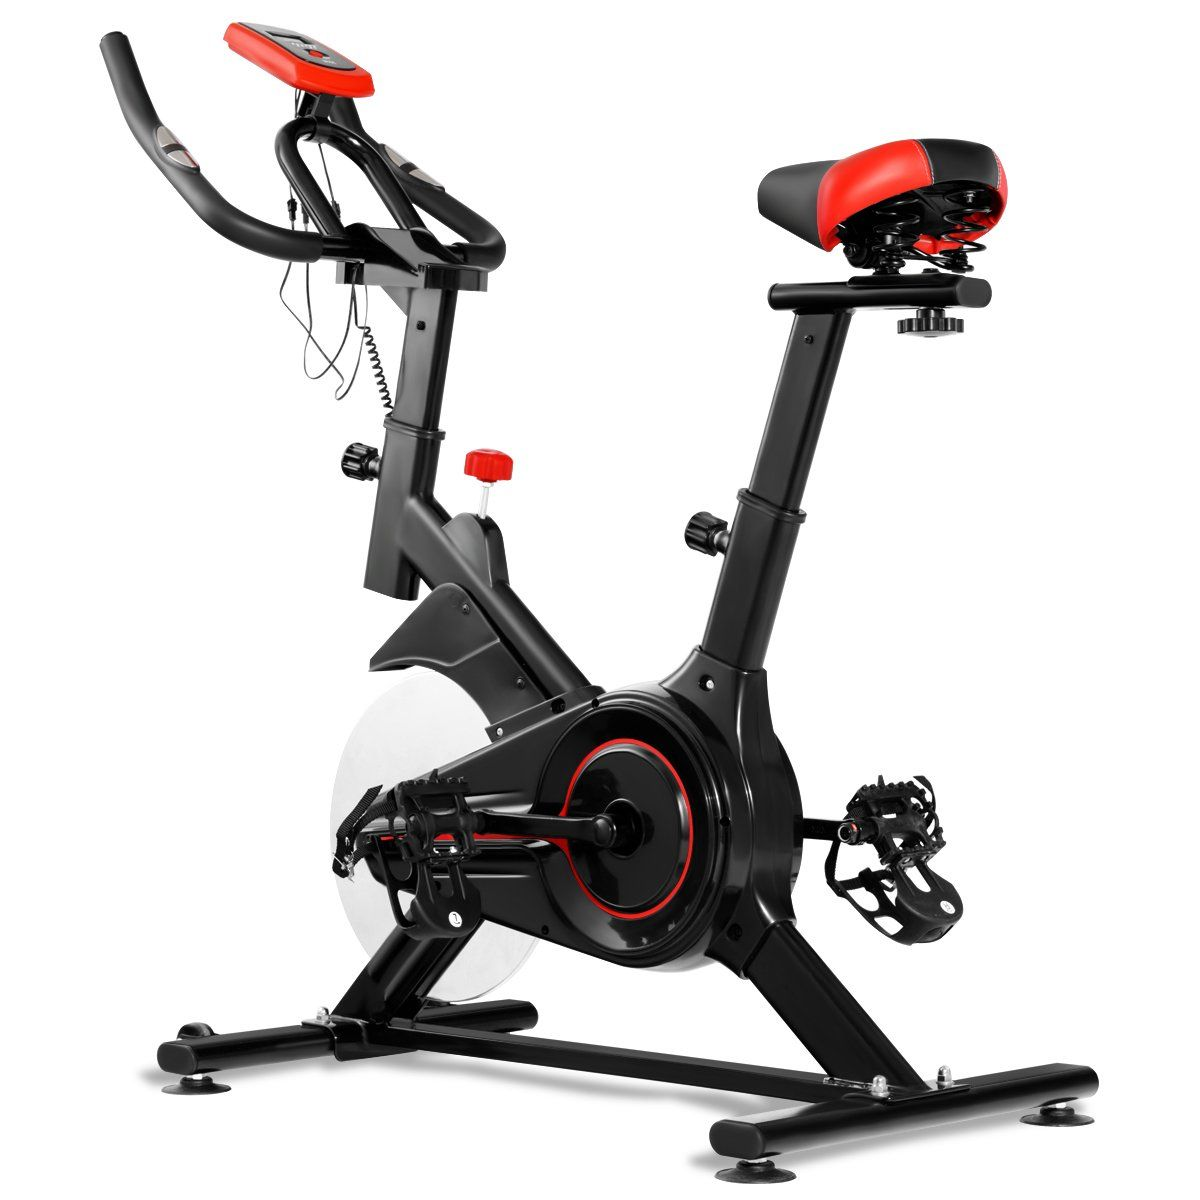 Gymax Exercise Cycling Bike Indoor Fitness Stationary Bicycle For Home Floor Gym Workout Heart Pulse Cardio T In 2020 Biking Workout Indoor Cycling Bike Indoor Workout